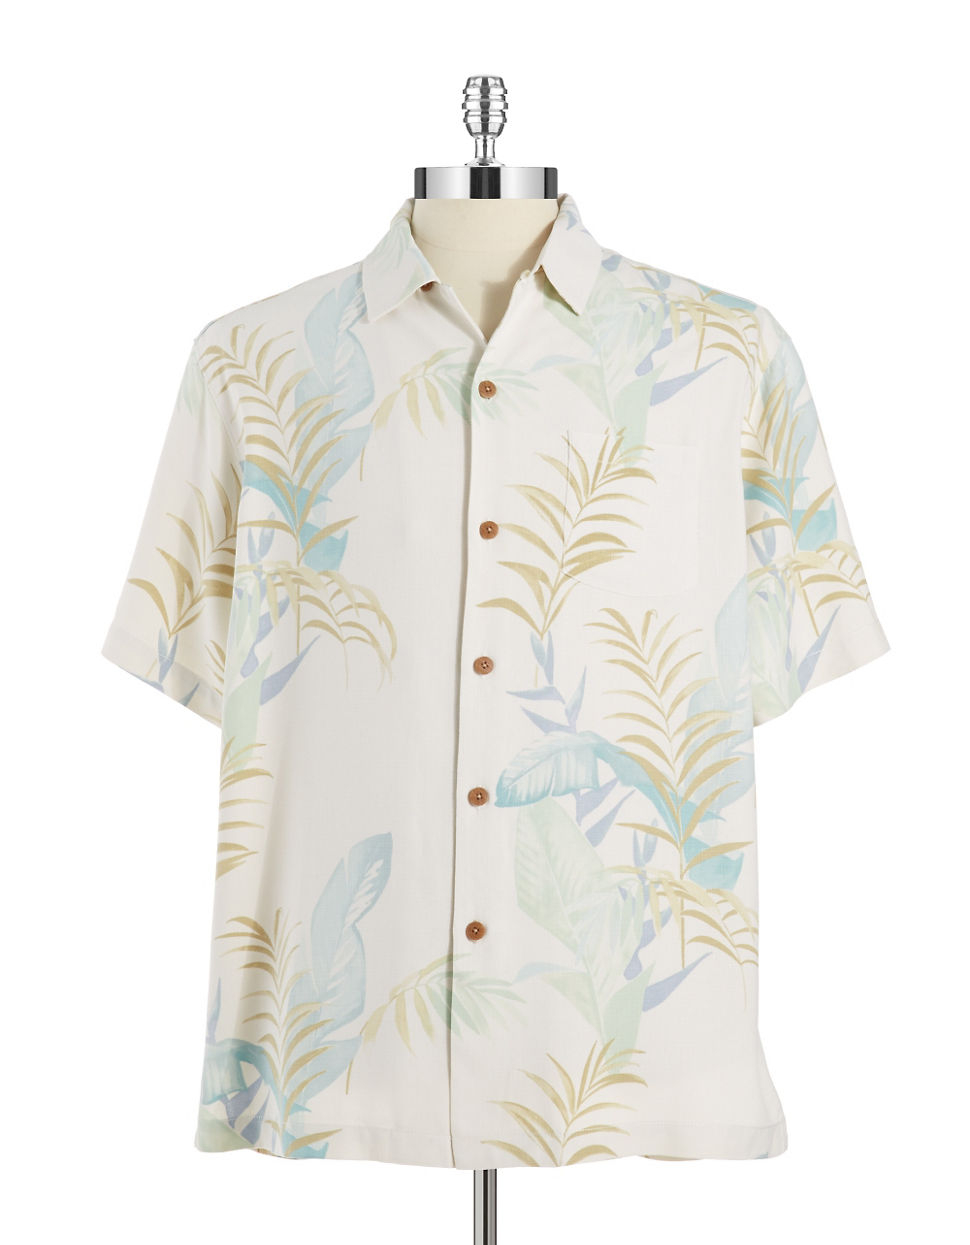 Tommy bahama silk hawaiian shirt in white for men lyst for Tommy bahama christmas shirt 2014